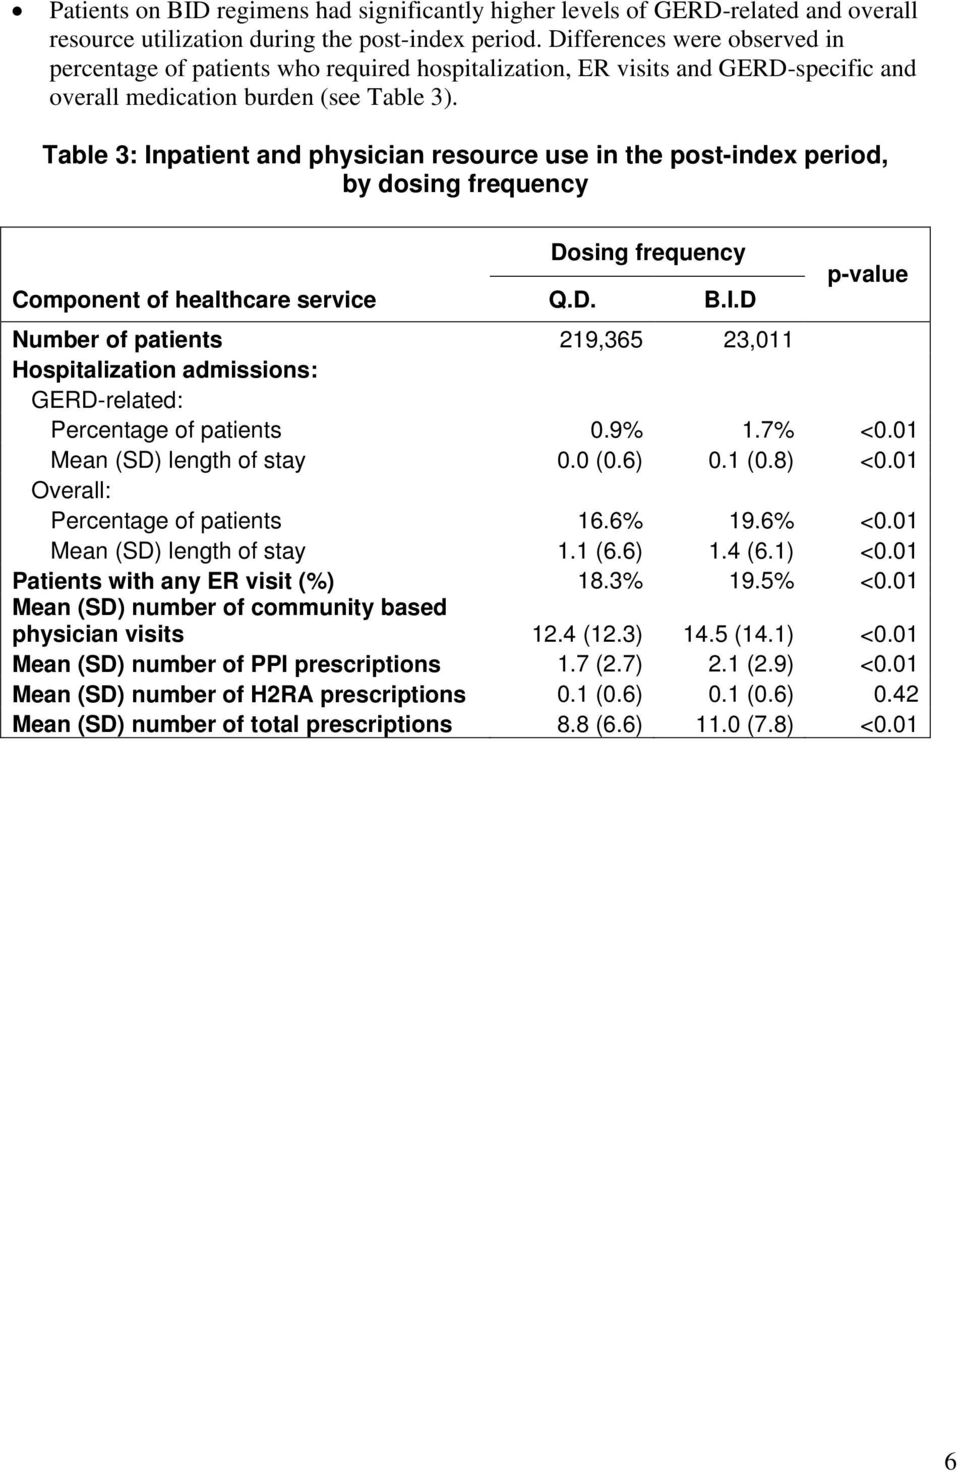 Table 3: Inpatient and physician resource use in the post-index period, by dosing frequency Dosing frequency Component of healthcare service Q.D. B.I.D p-value Number of patients 219,365 23,011 Hospitalization admissions: GERD-related: Percentage of patients 0.